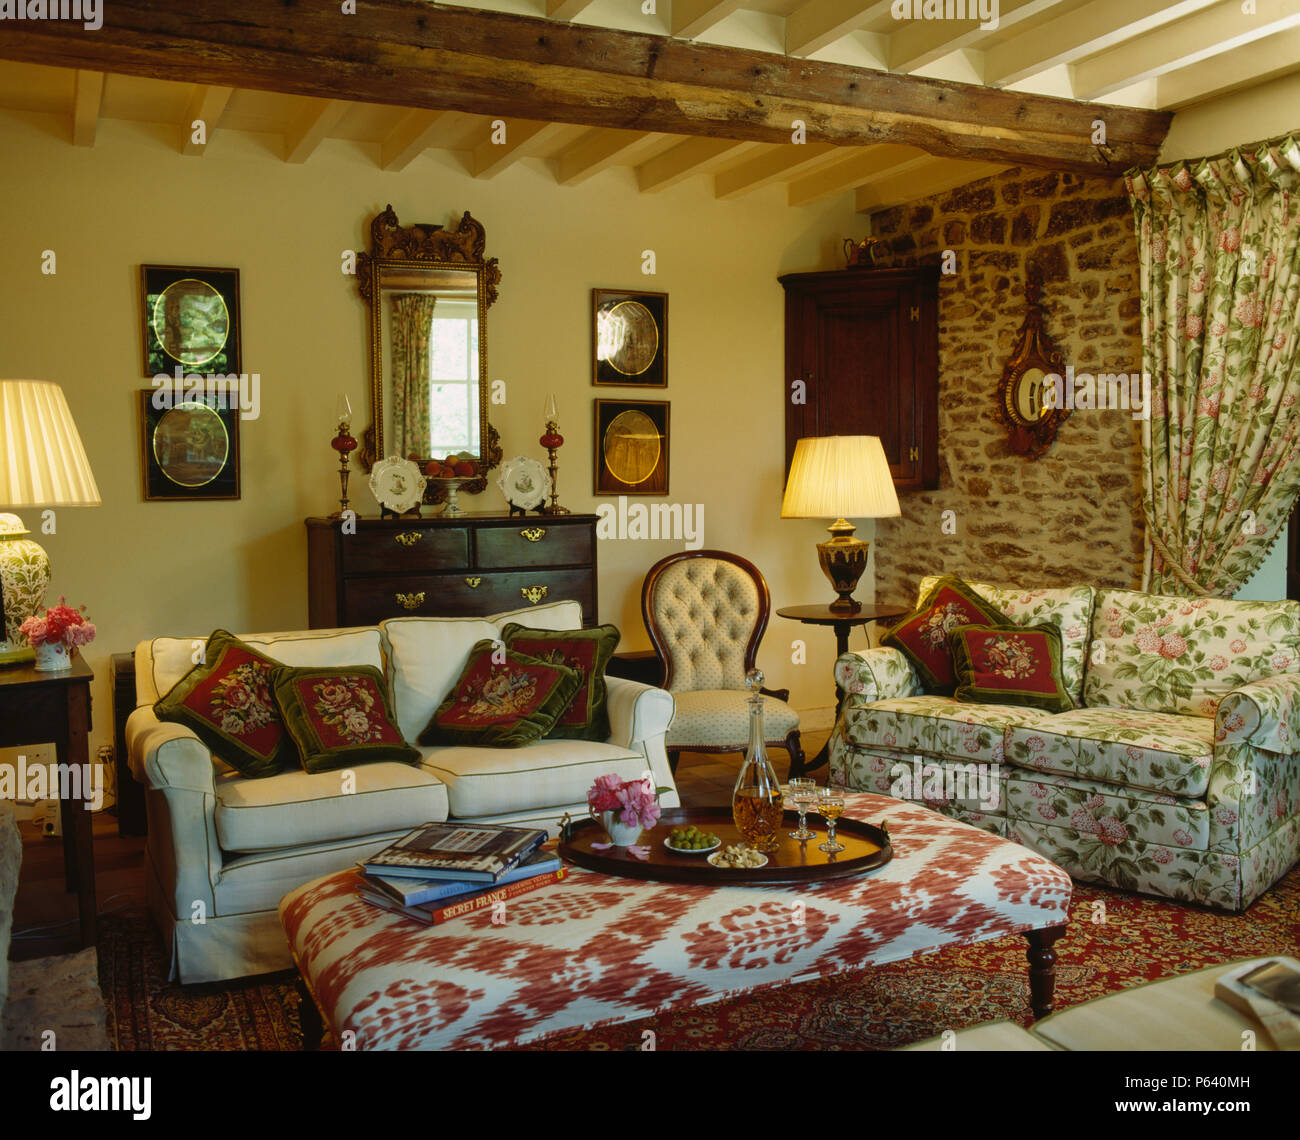 Upholstered stool and comfy sofas in fRENCH cottage living room with ...